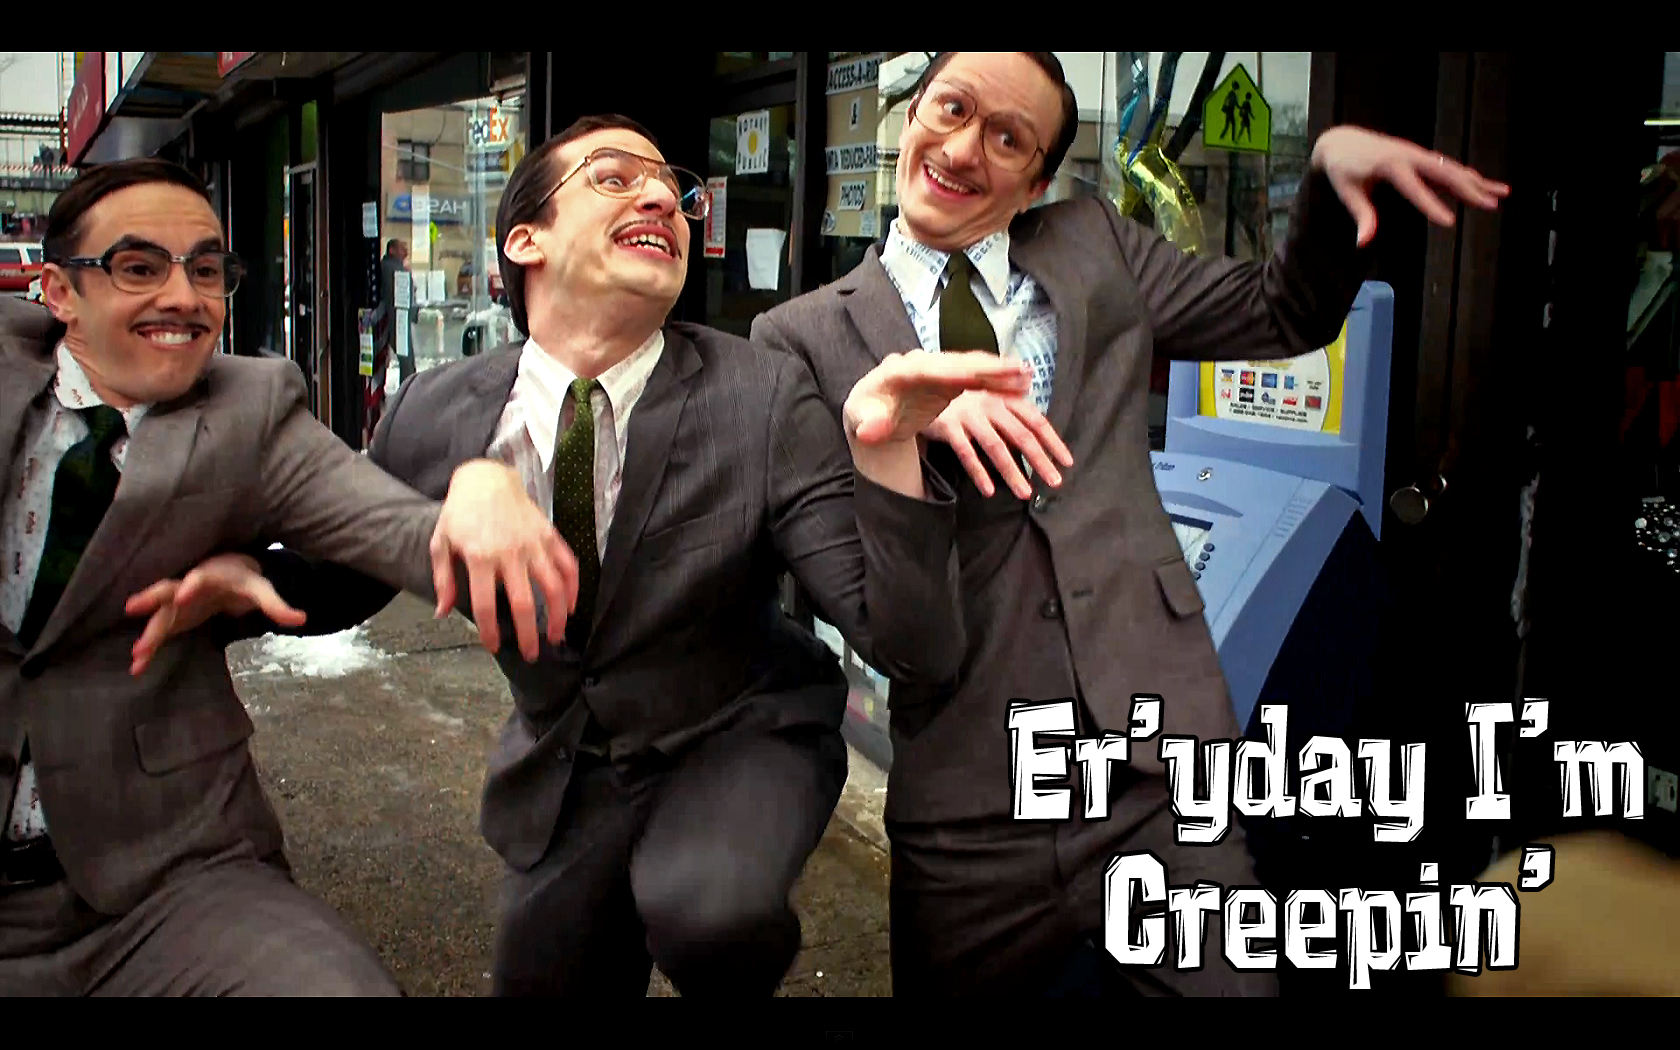 Creep The lonely Island